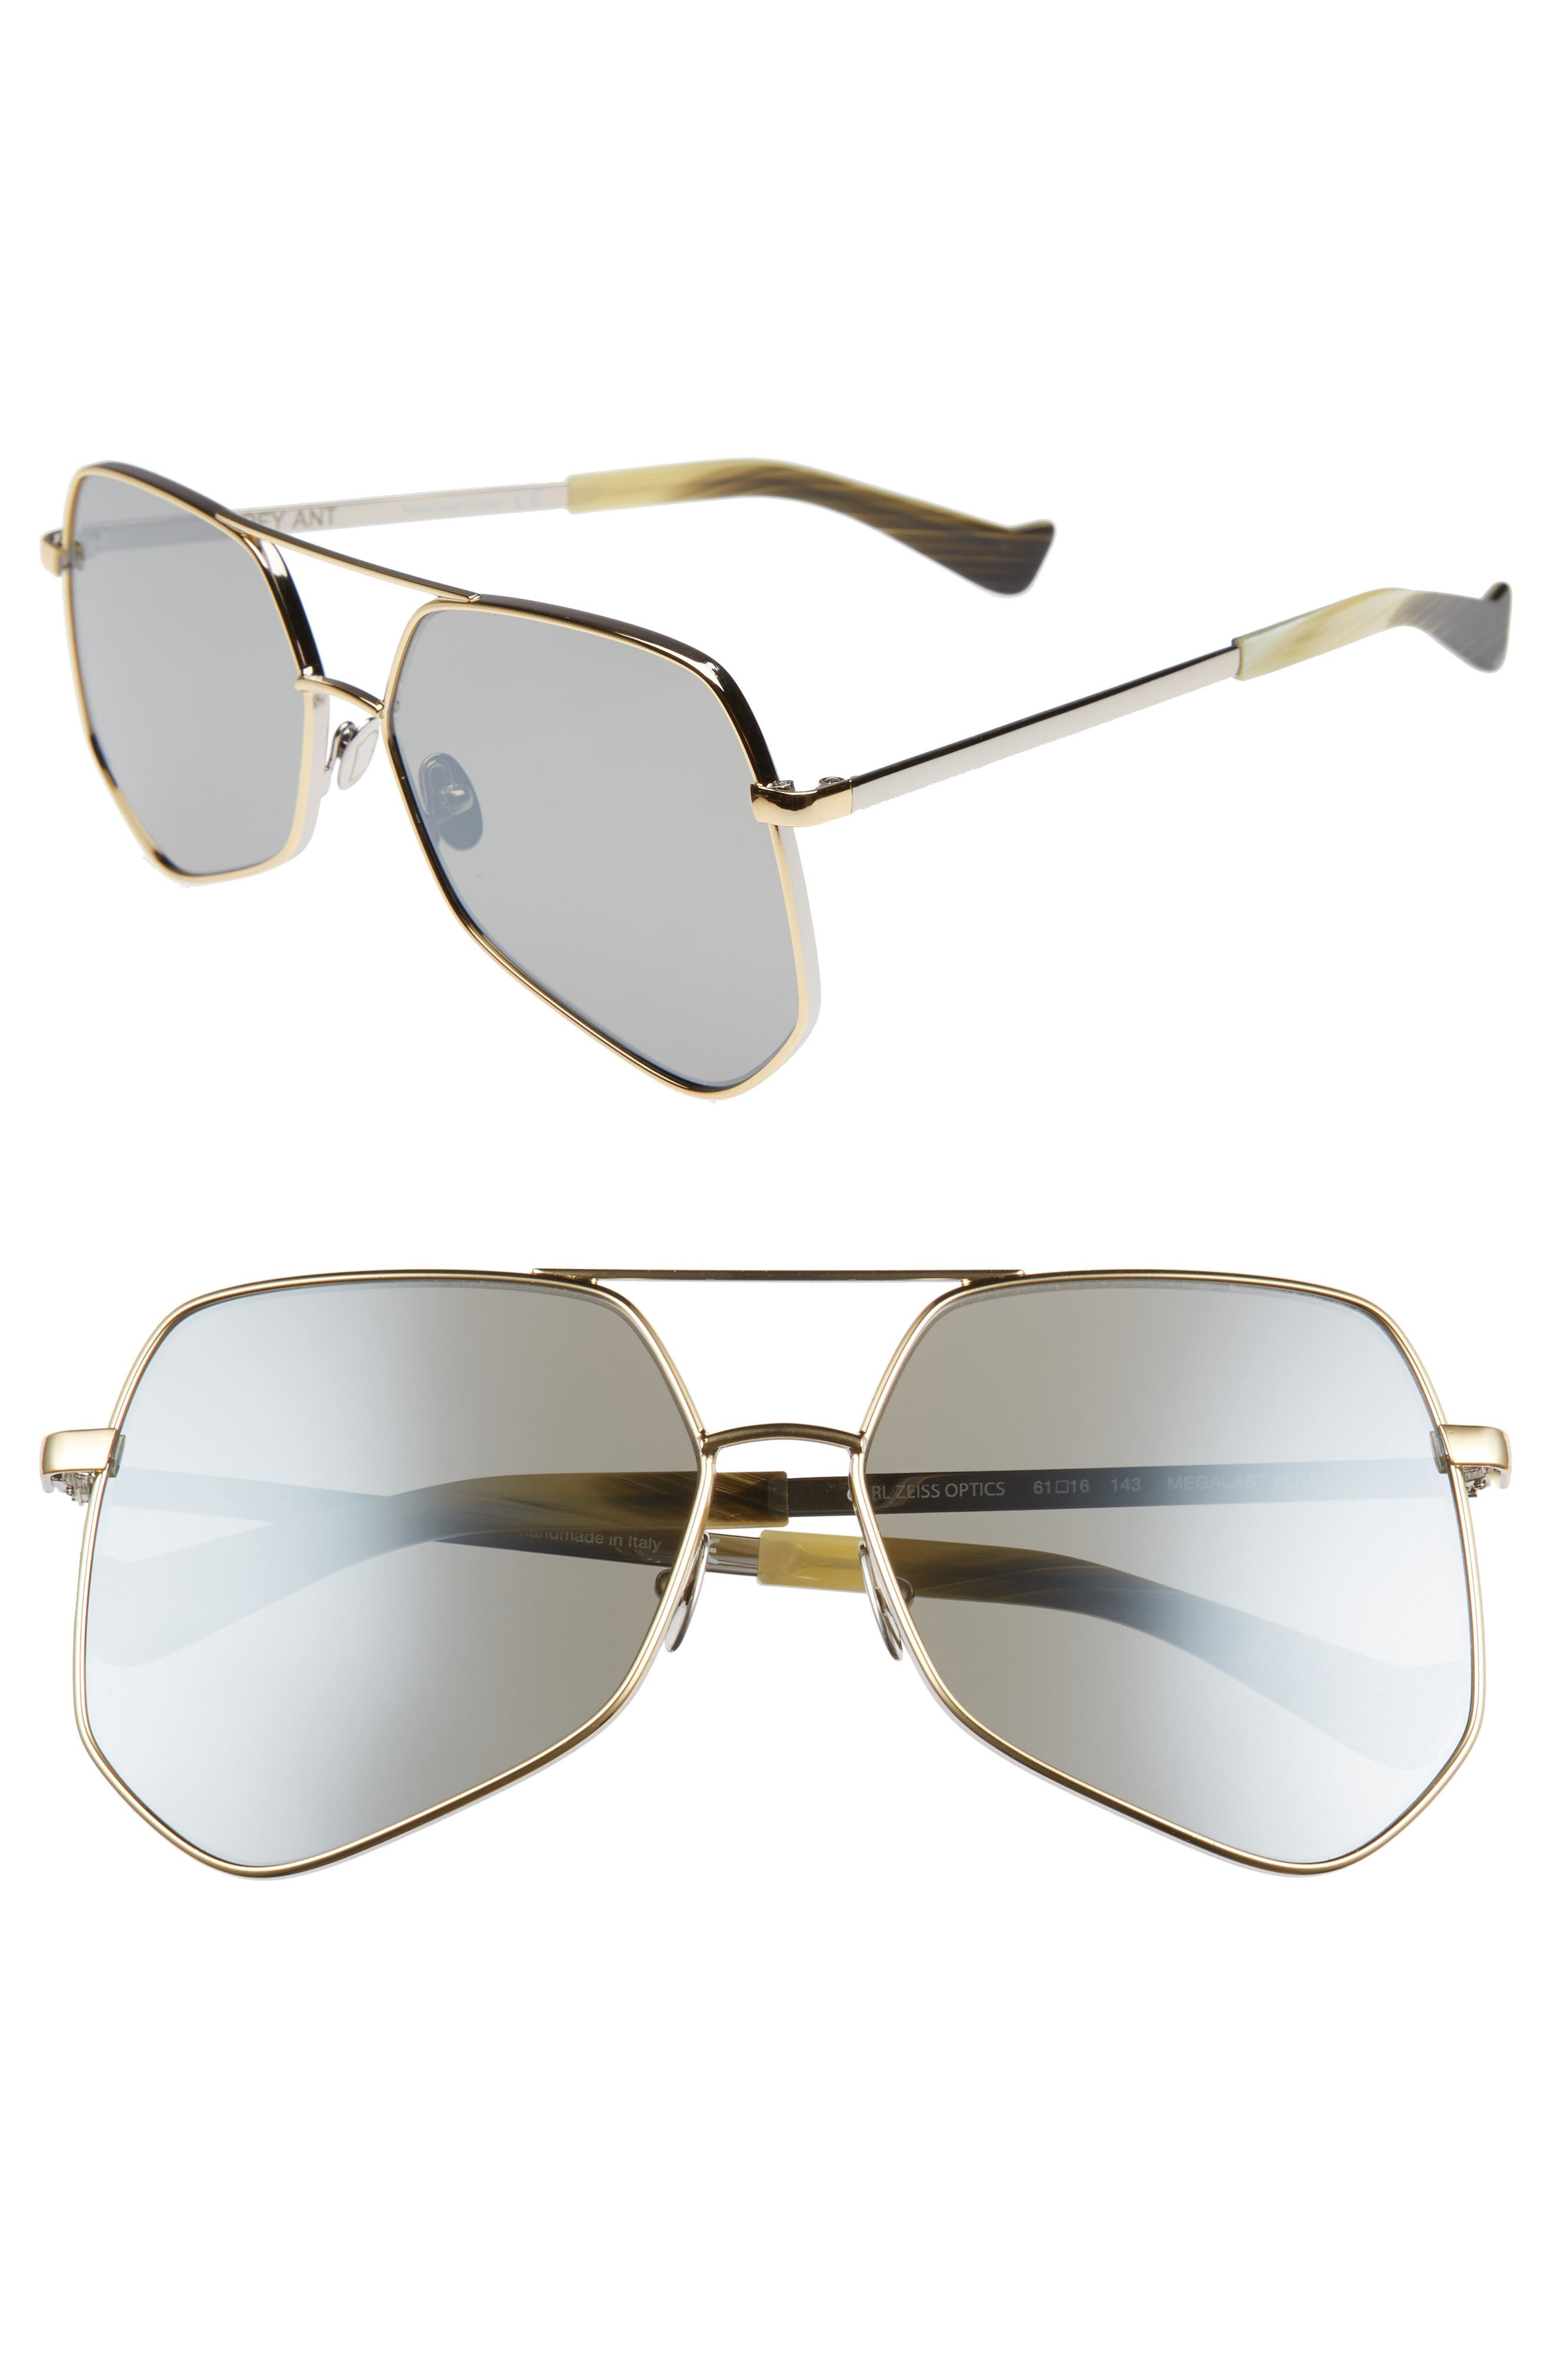 MEGALAST FLAT 61MM SUNGLASSES - SILVER GOLD/ SILVER